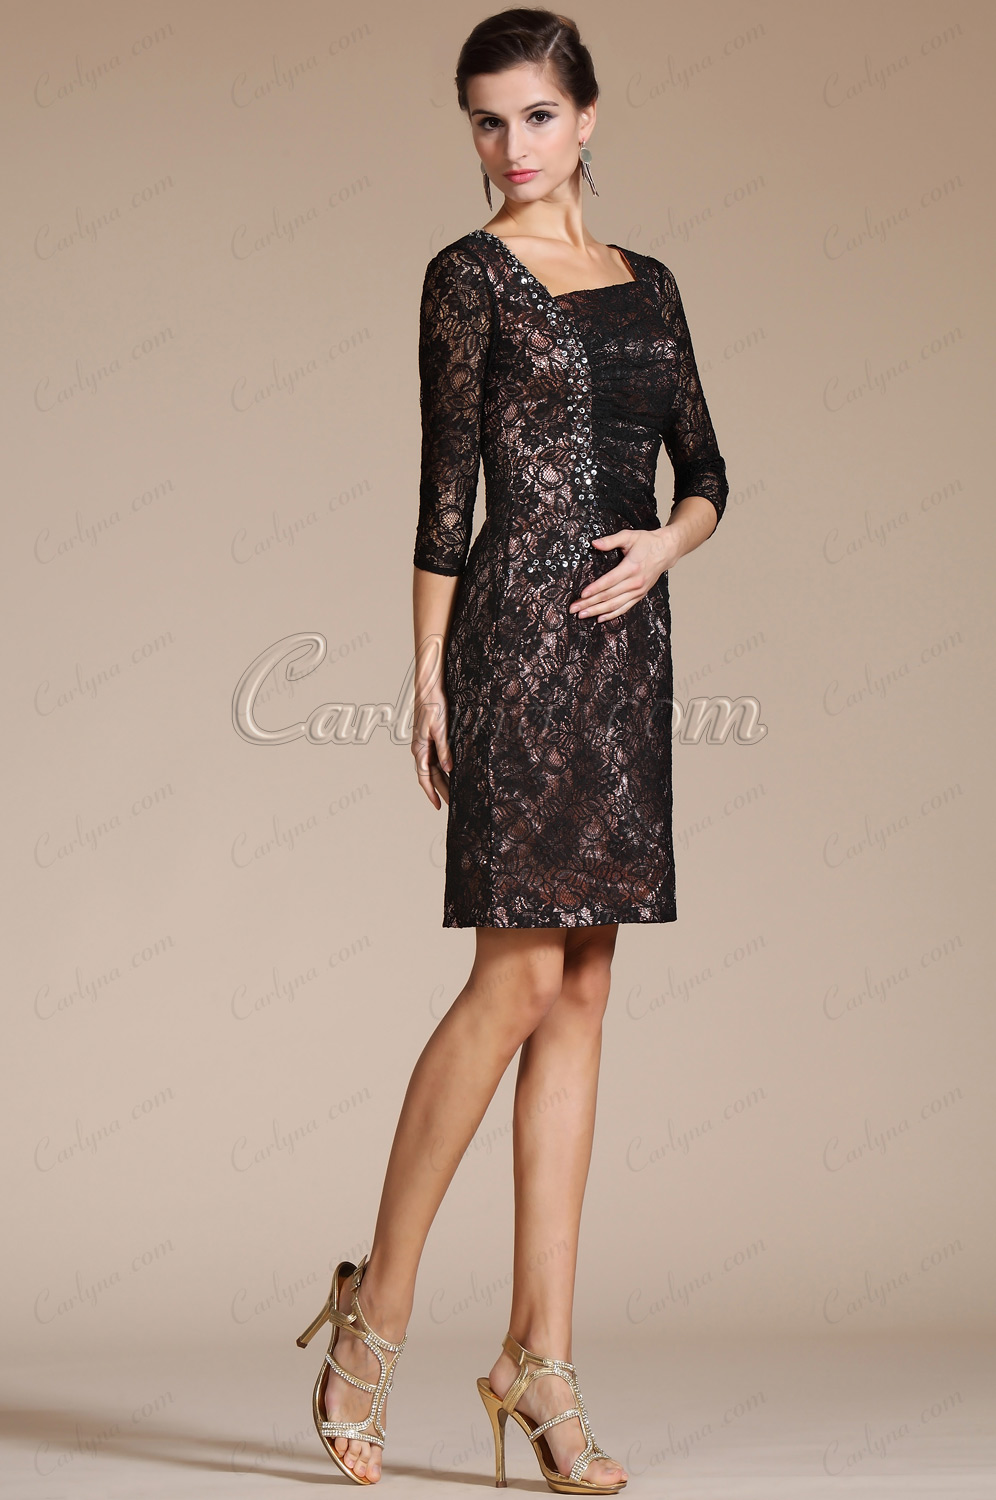 Carlyna 2014 New 3/4 Sleeves Asymmetrical Neckline Cocktail Dress/Mother of the Bride Dress (C351402